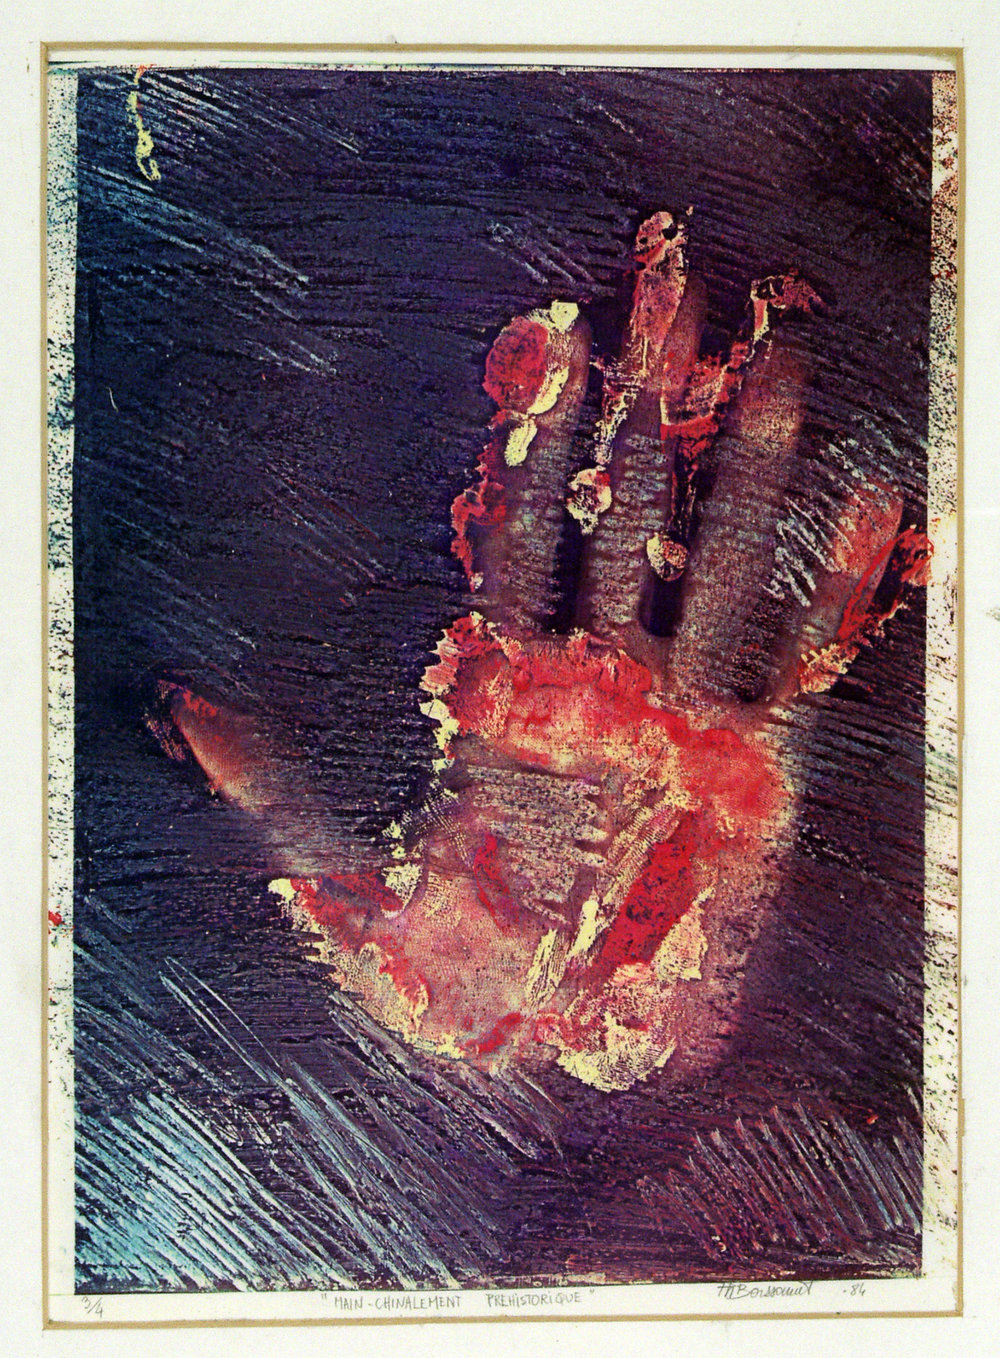 """Mainchinalement préhistorique"", 1984 21.5 x 28 cm Collection of the  Museo Internacional de Electrografía , Cuenca, Spain"